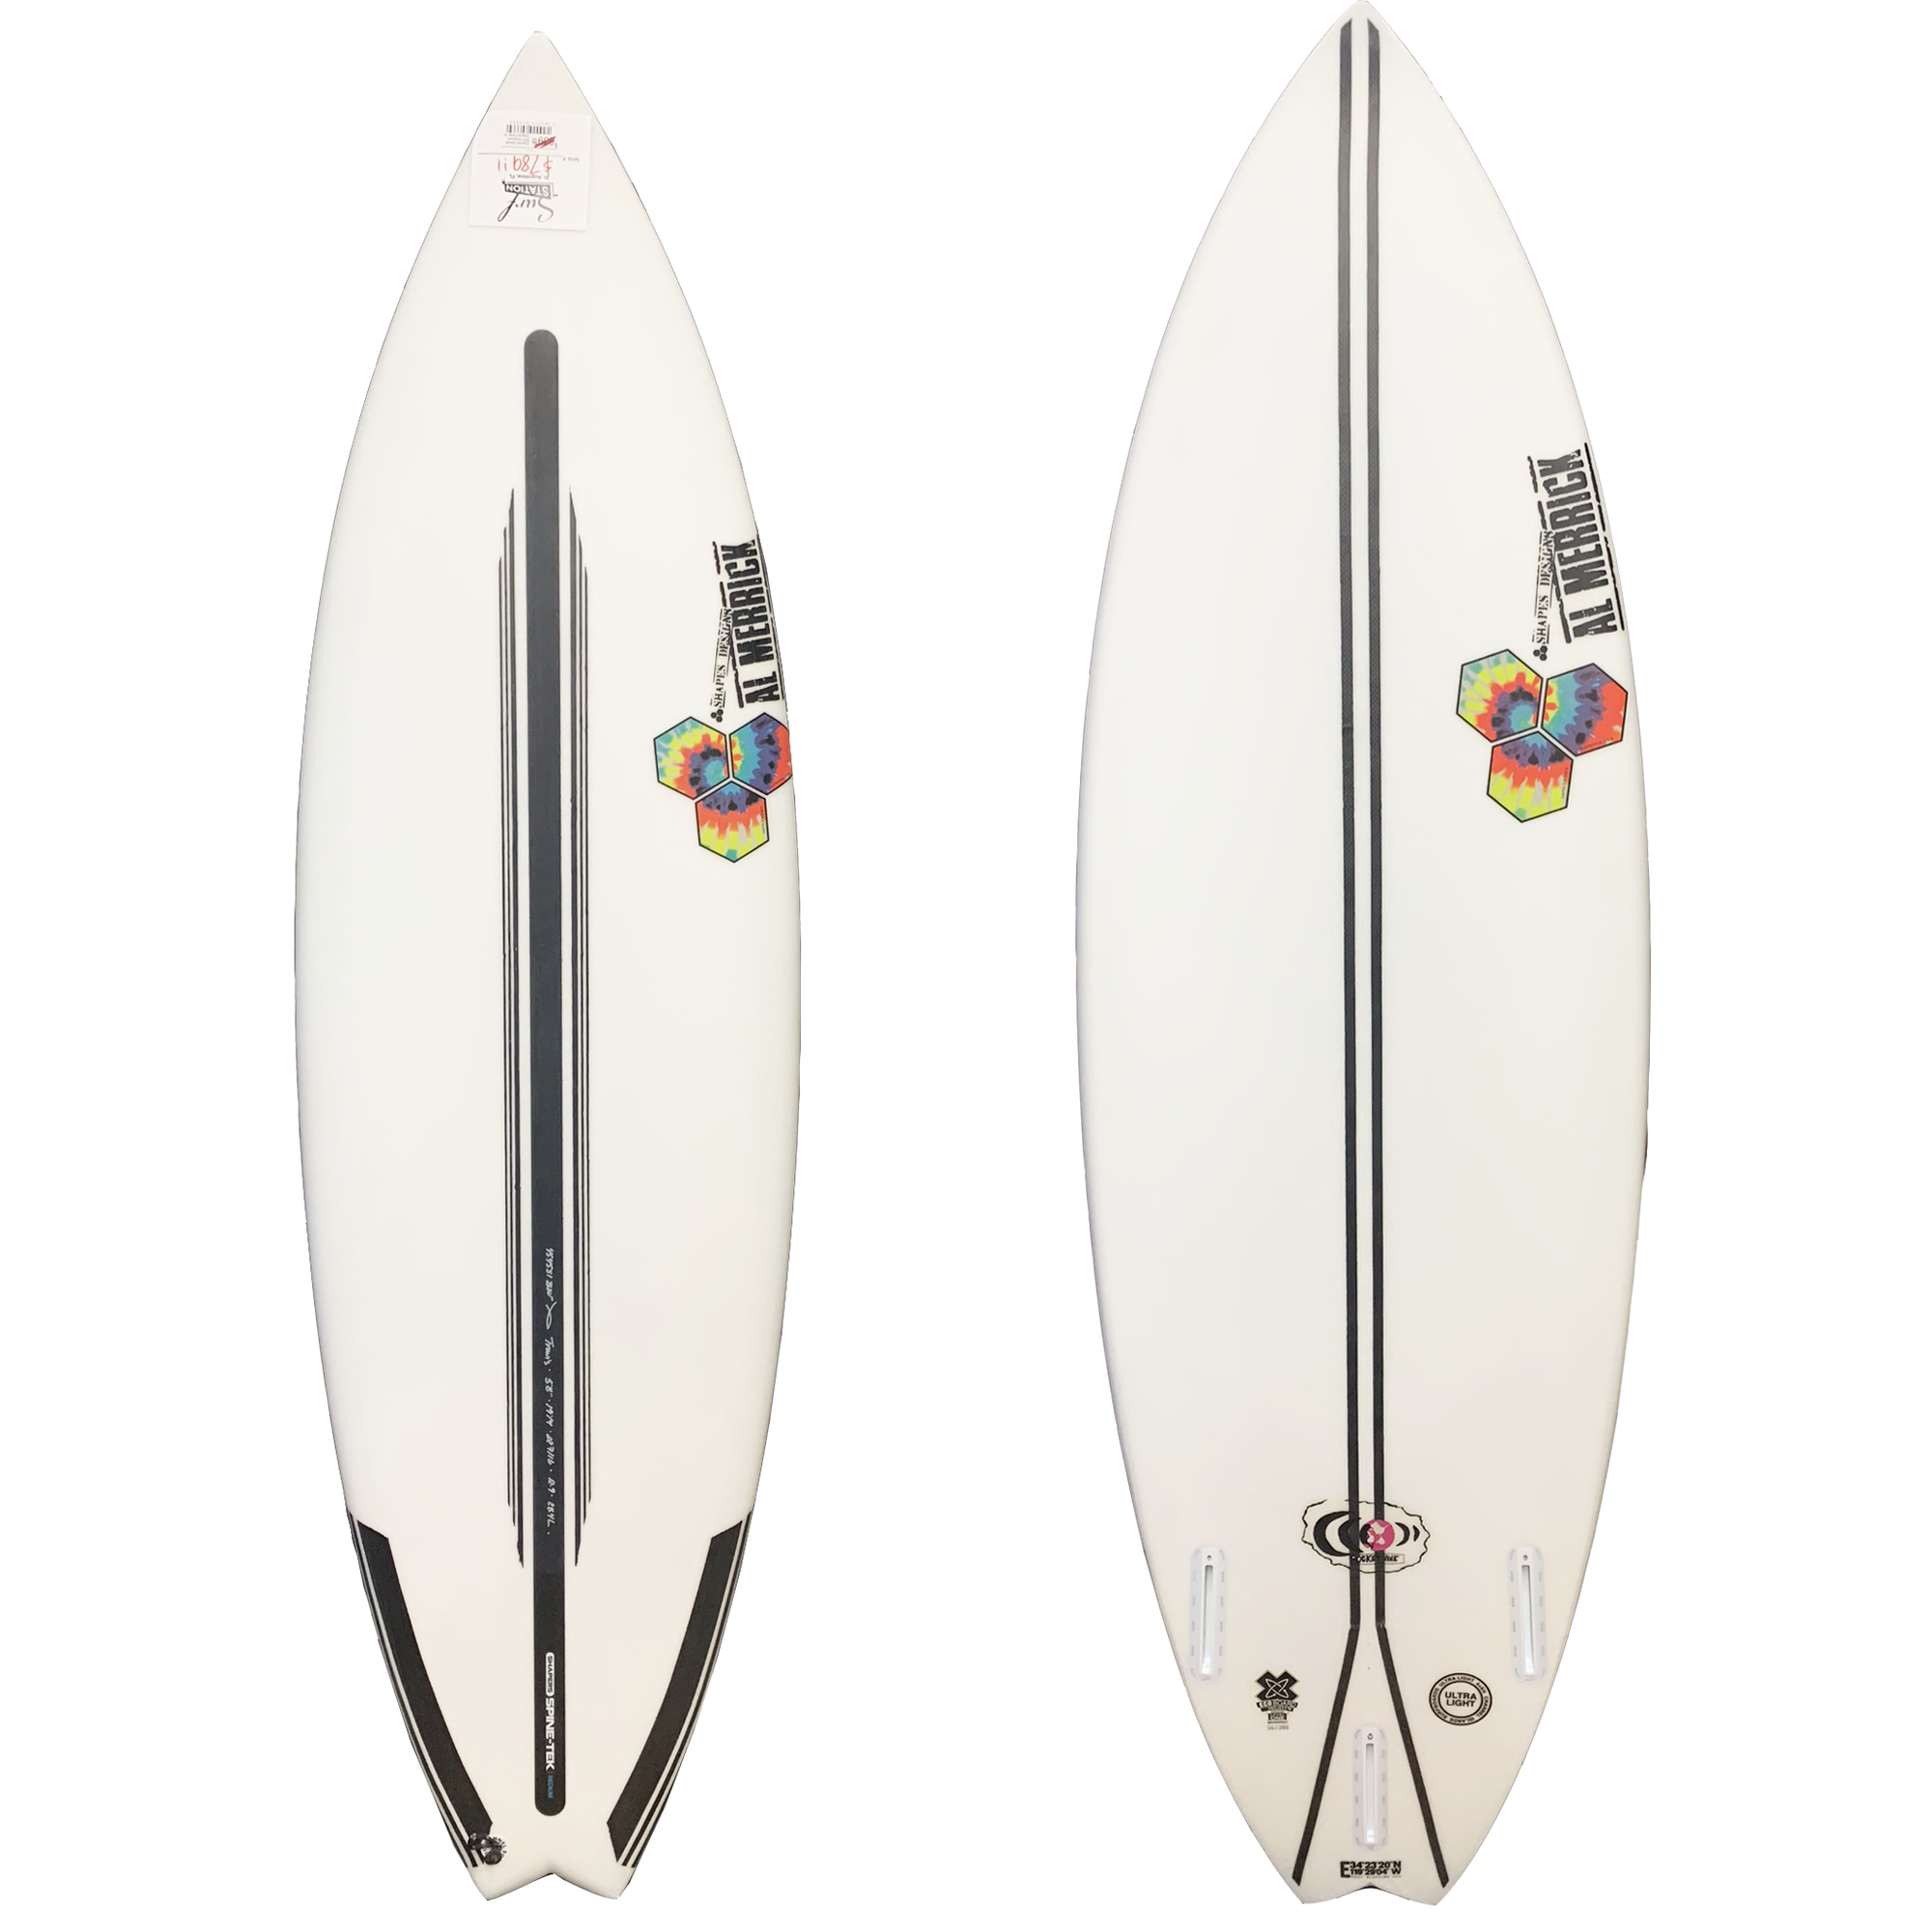 Channel Islands Rocket 9 Surfboard - Spine-Tek